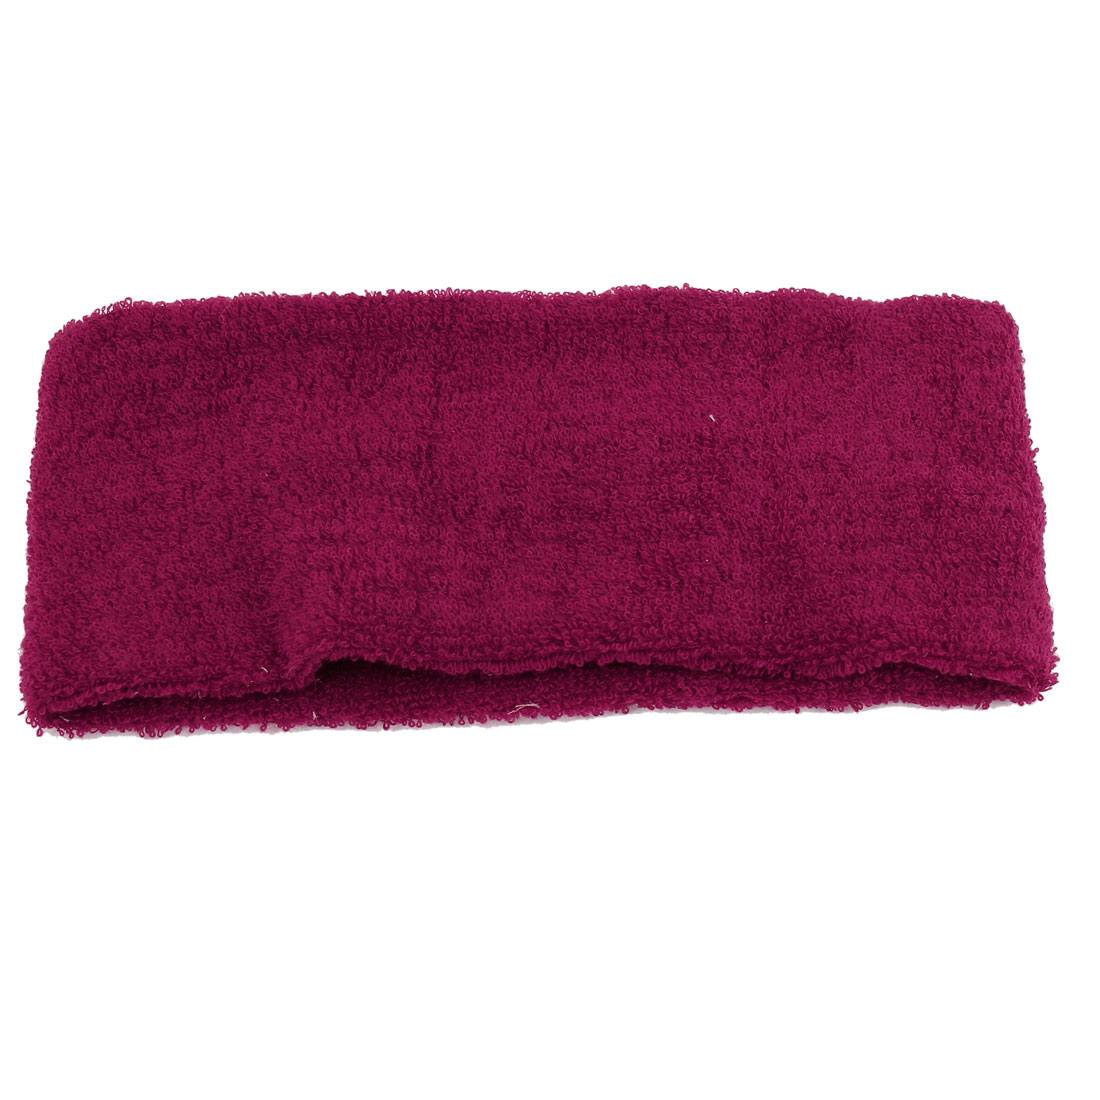 Adult Volleyball Running Exercise Protective Stretch Head Band Burgundy